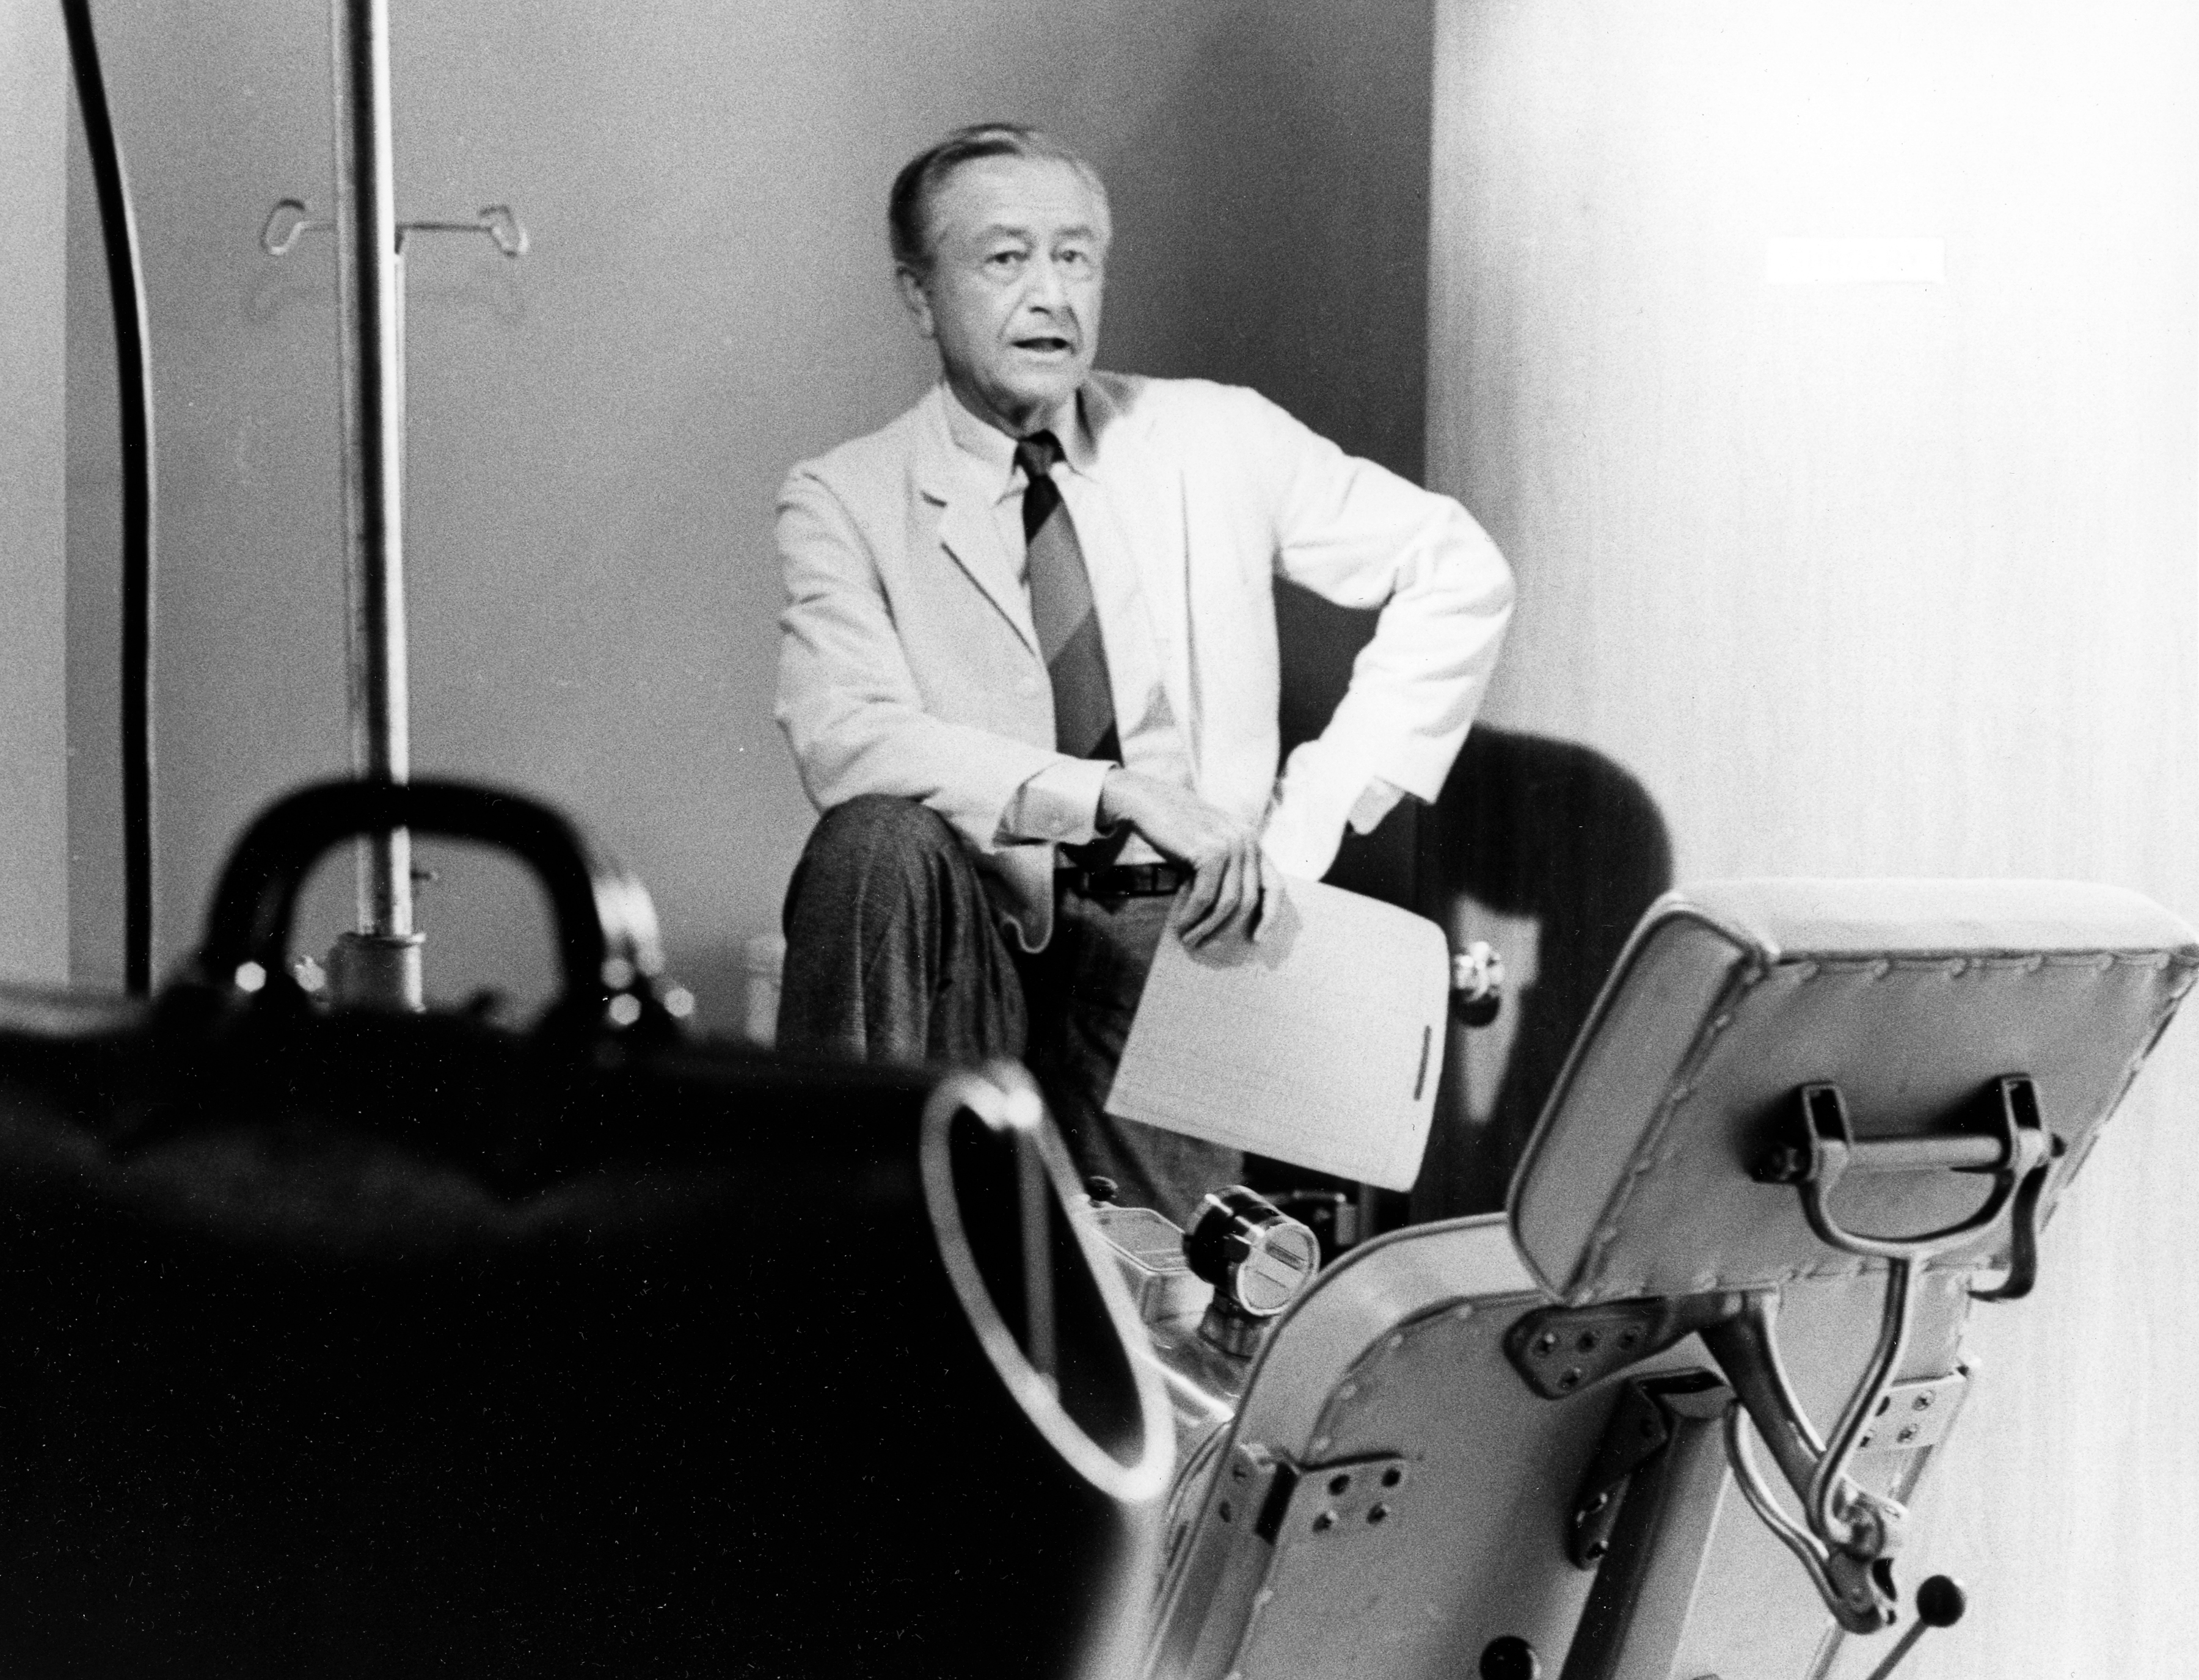 Robert Young as Marcus Welby, M.D.